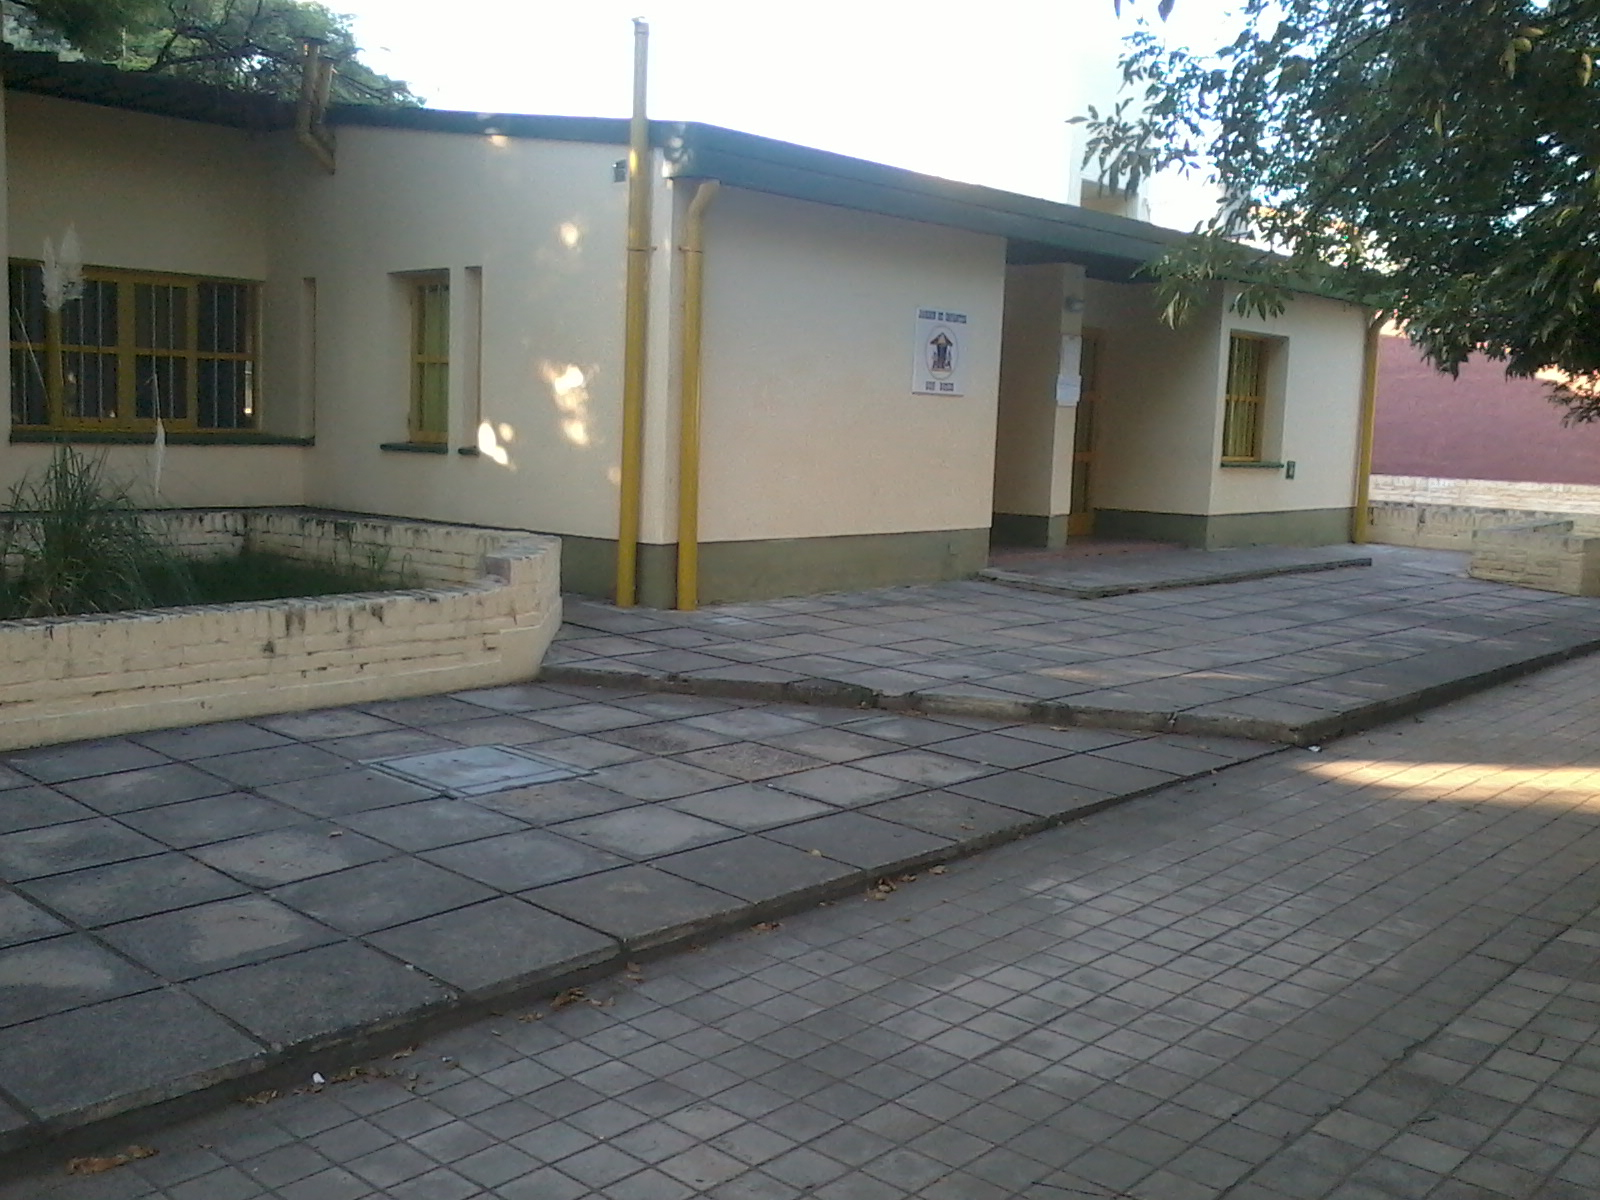 Barrio don bosco c rdoba jardin don bosco ipem 39 for Barrio jardin espinosa cordoba